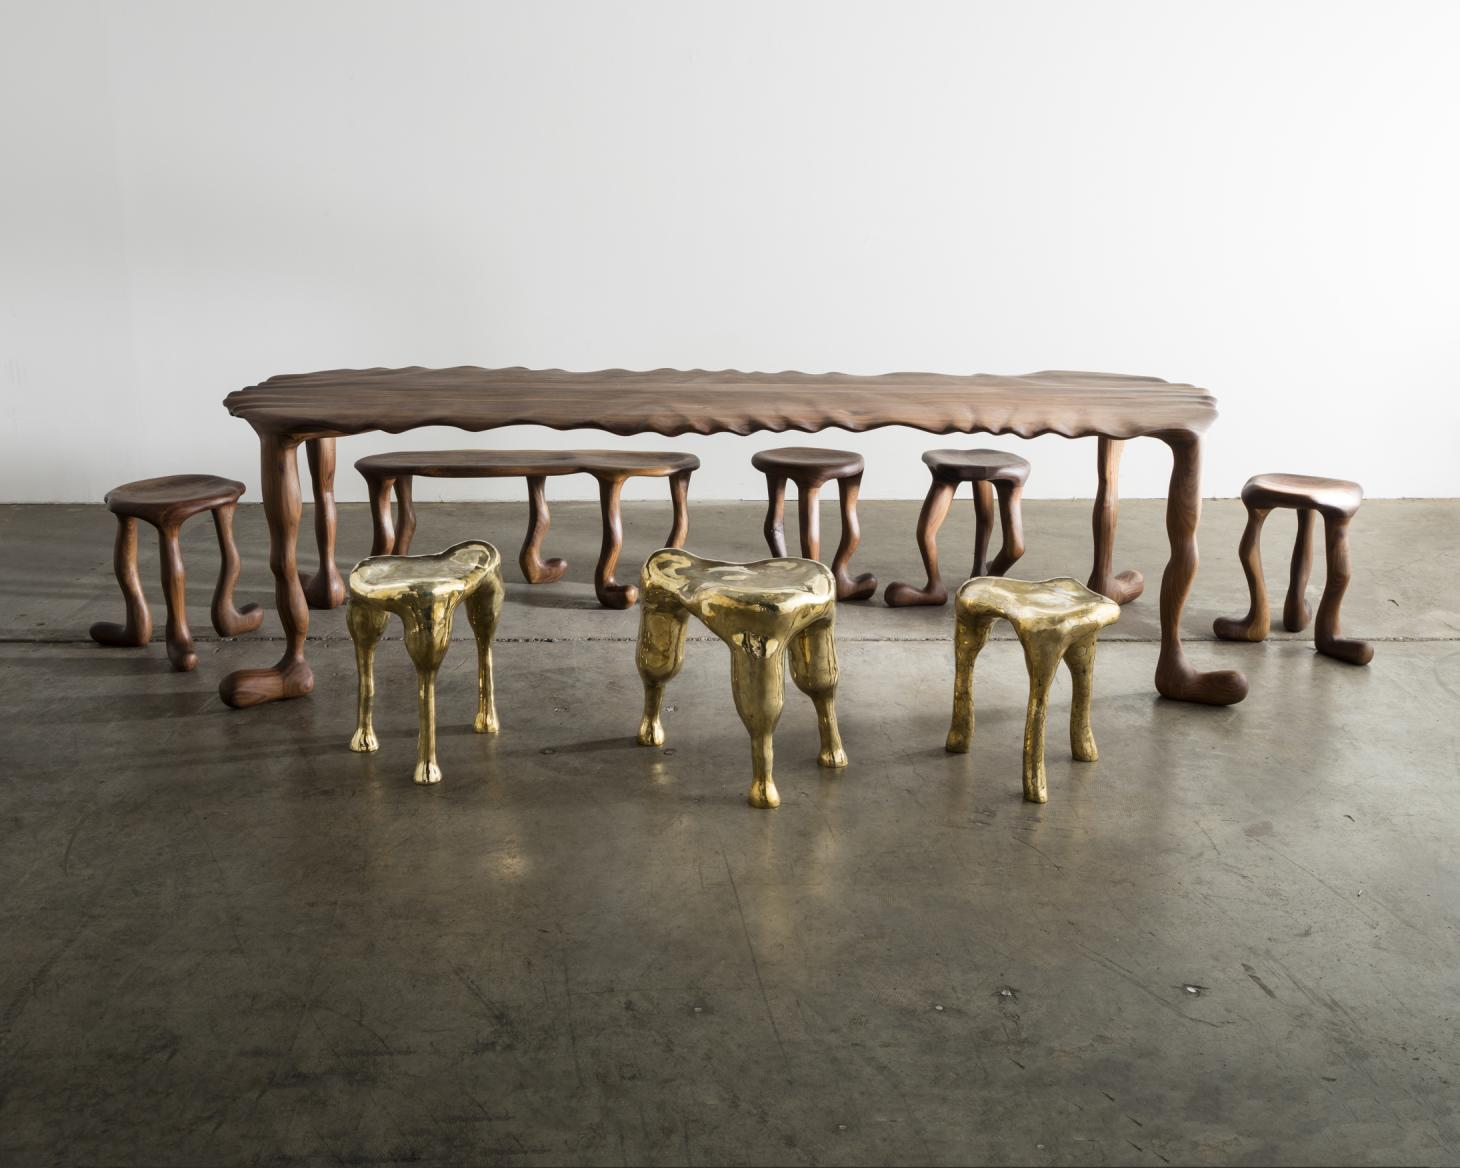 evelyn hex stools haas brothers